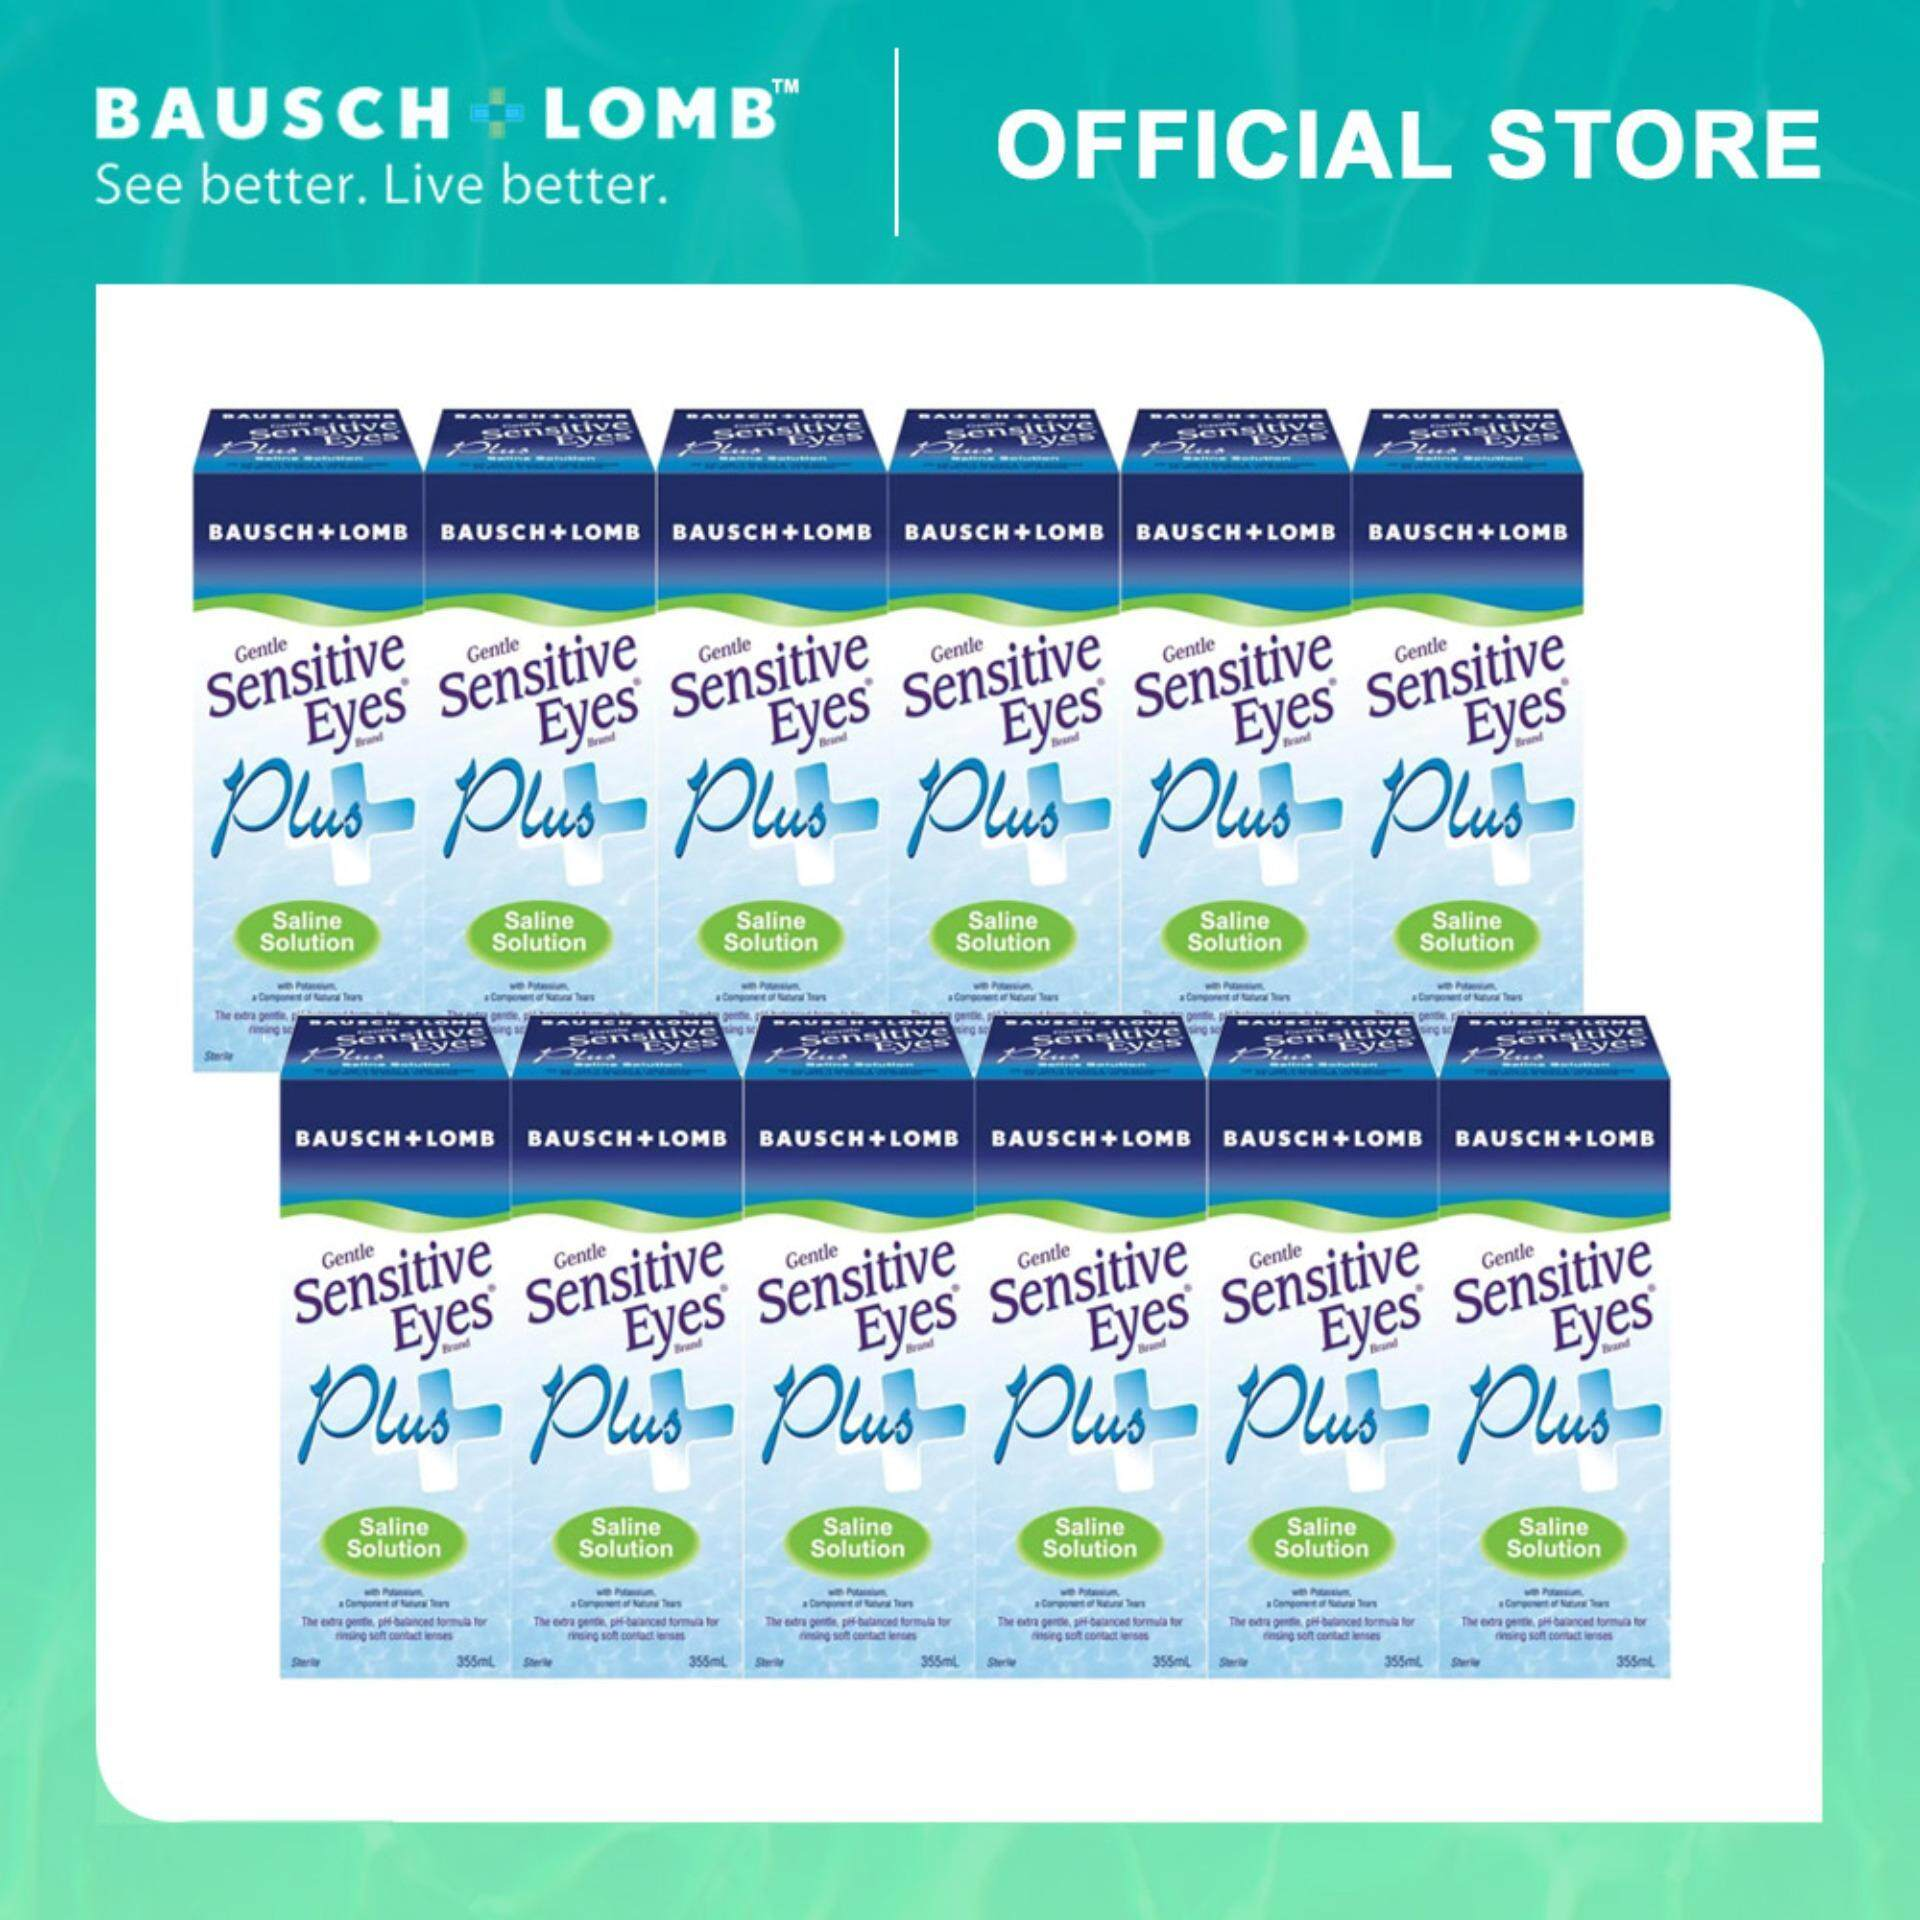 Bausch & Lomb 355ml 12-Pack Combo Sensitive Eyes Plus Saline Solution (12 Boxes)